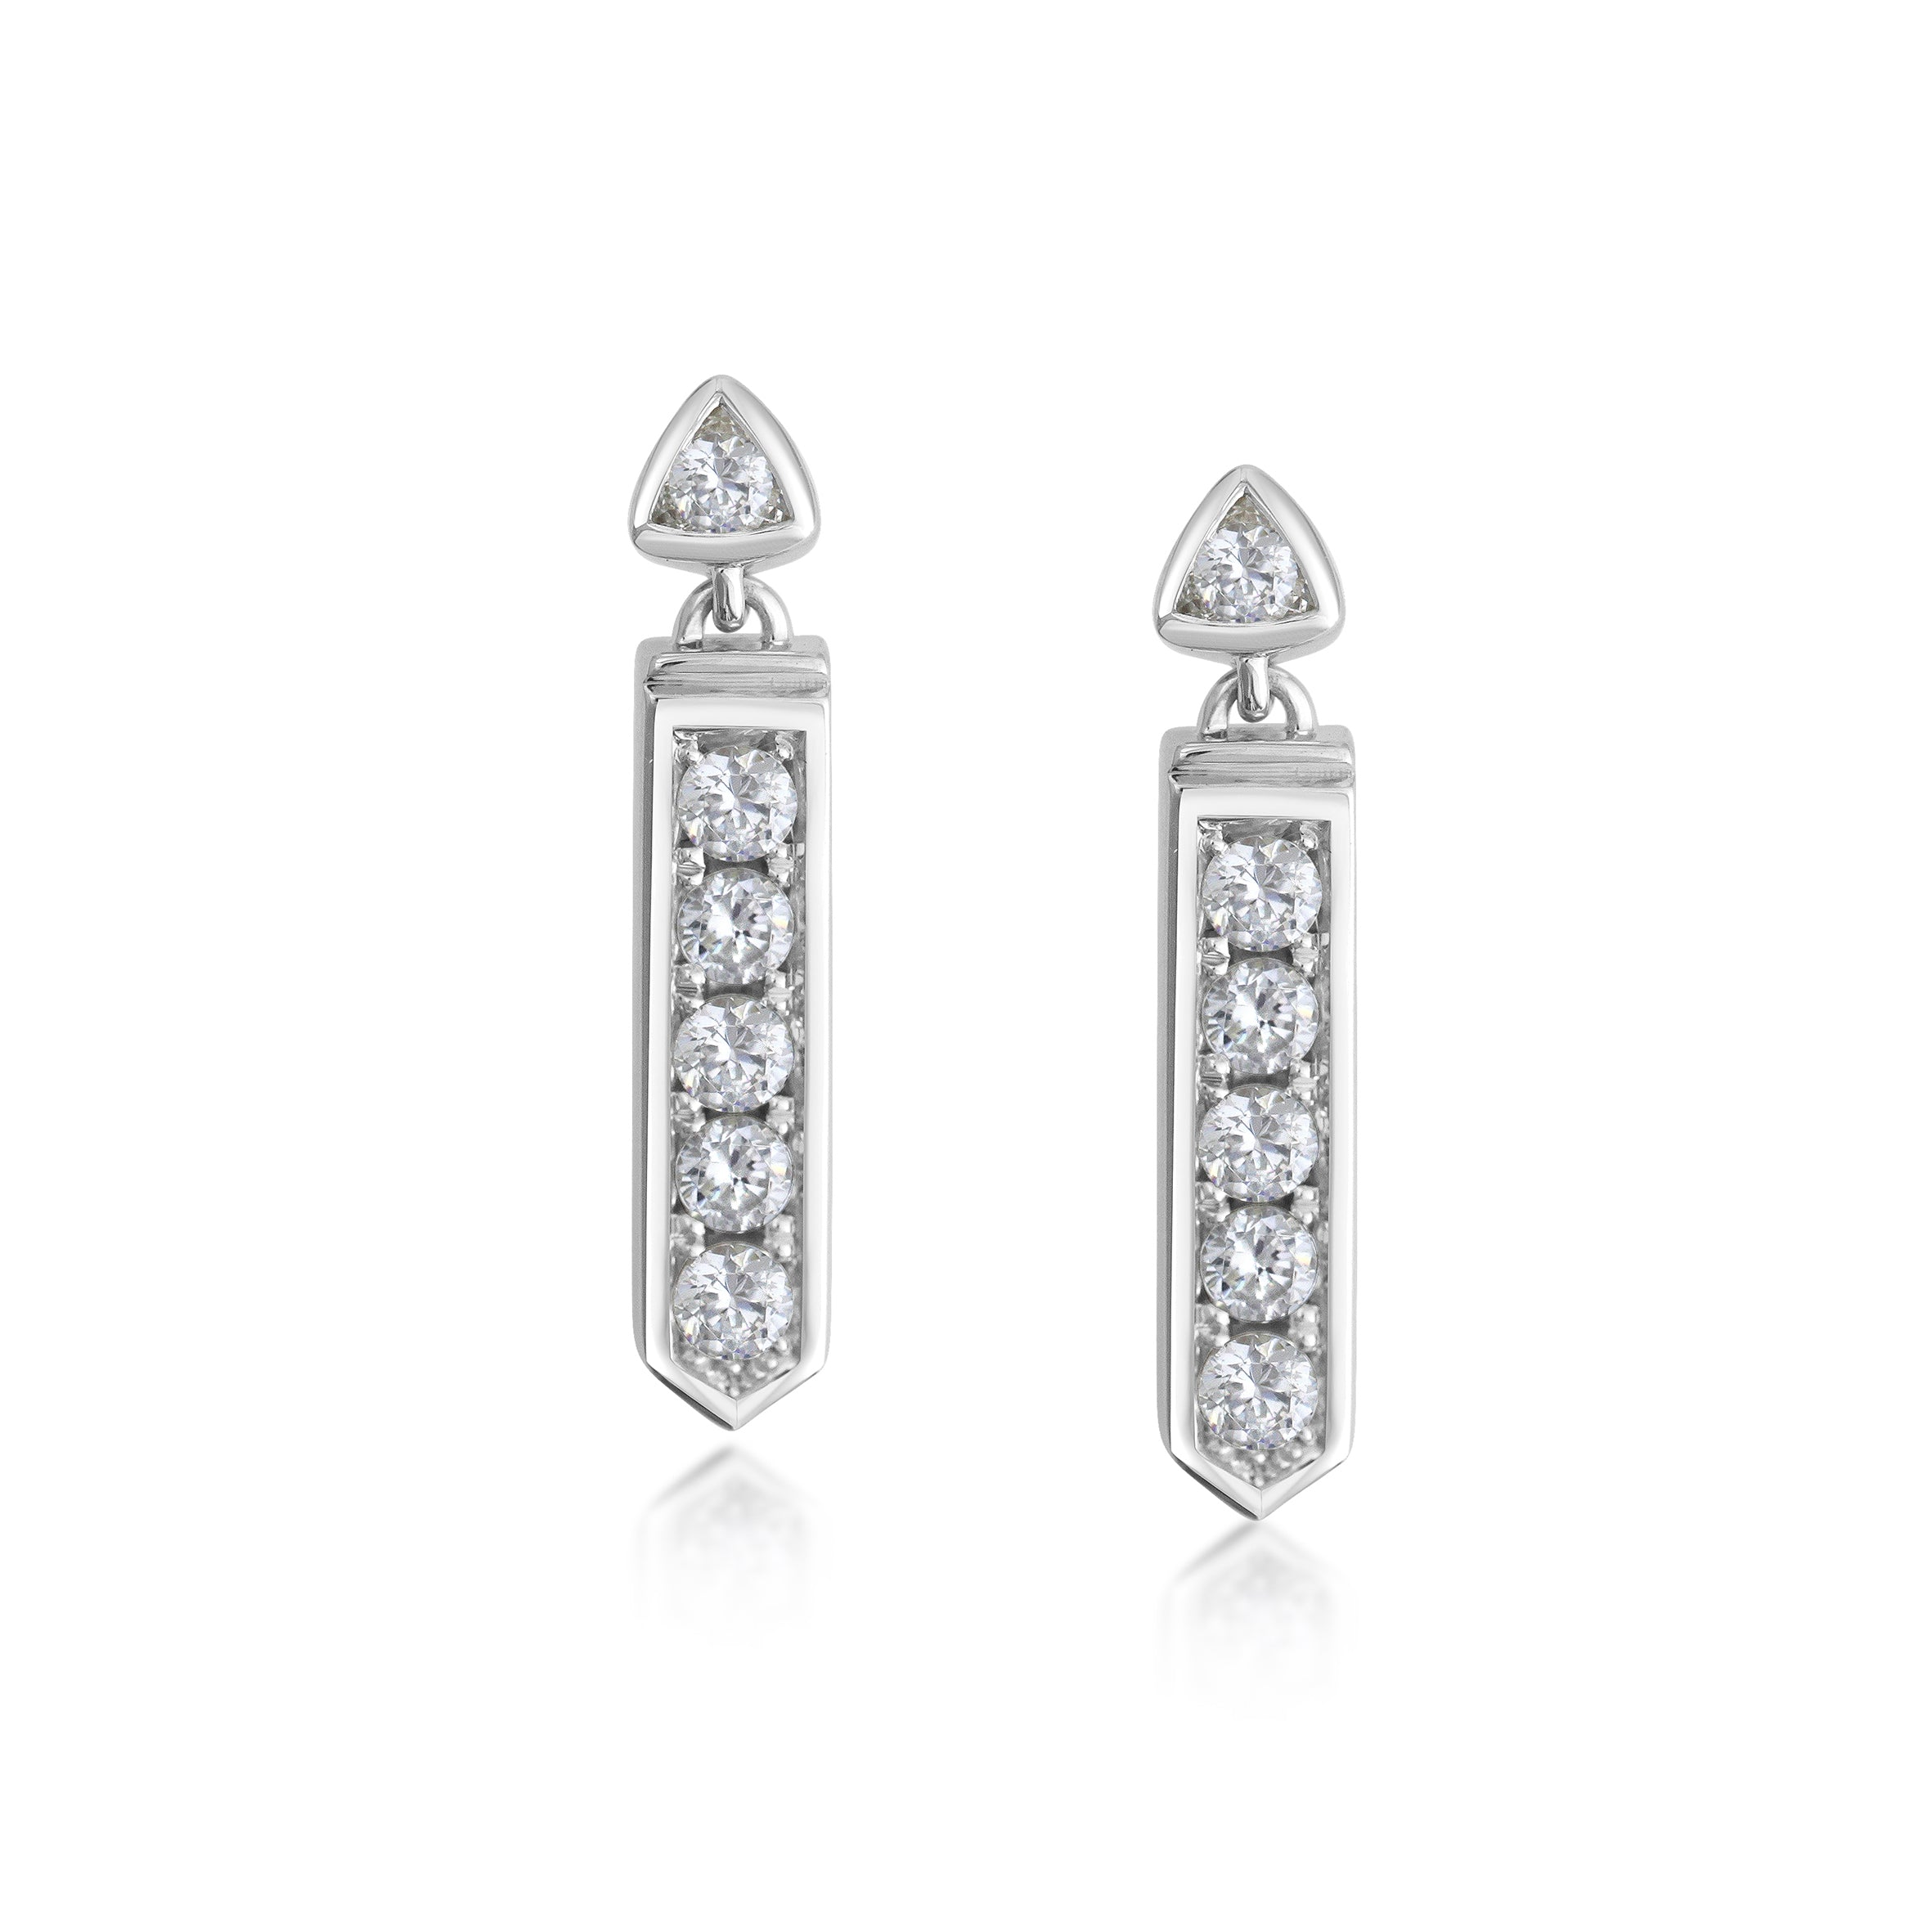 Bridal Earrings White Gold and Diamonds